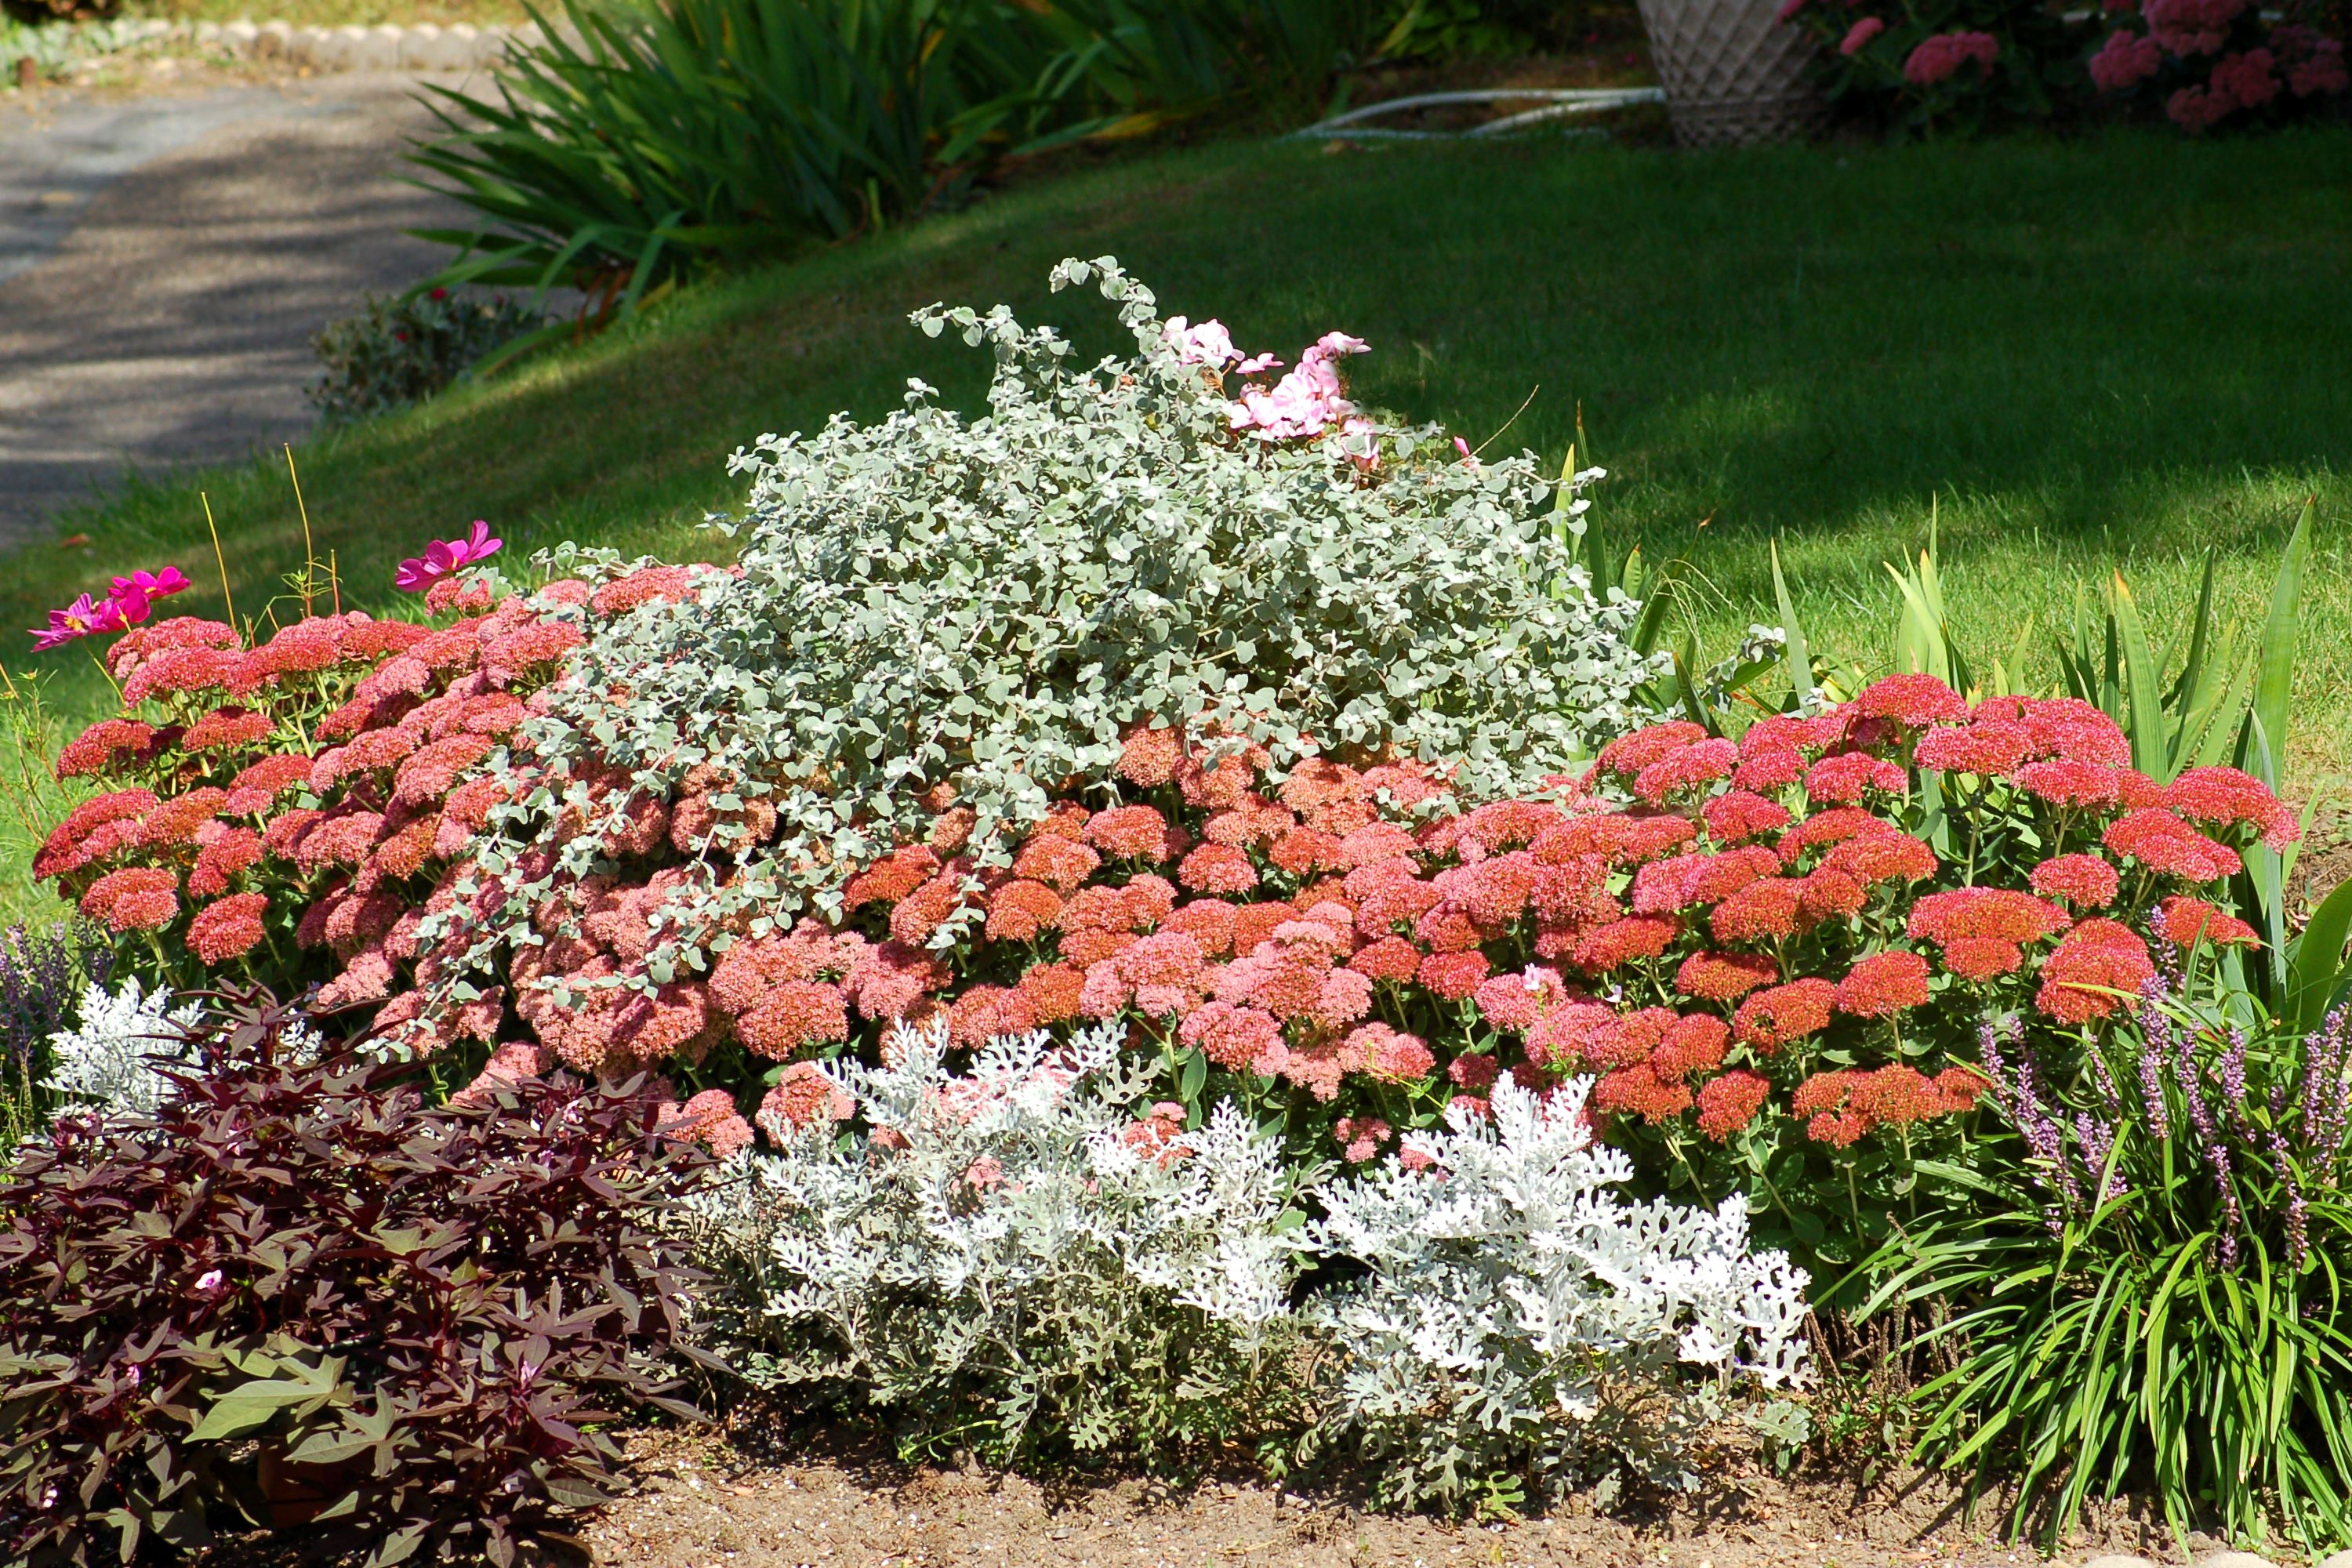 A flower border with 'Autumn Joy' sedum. This is a good planting for fall.